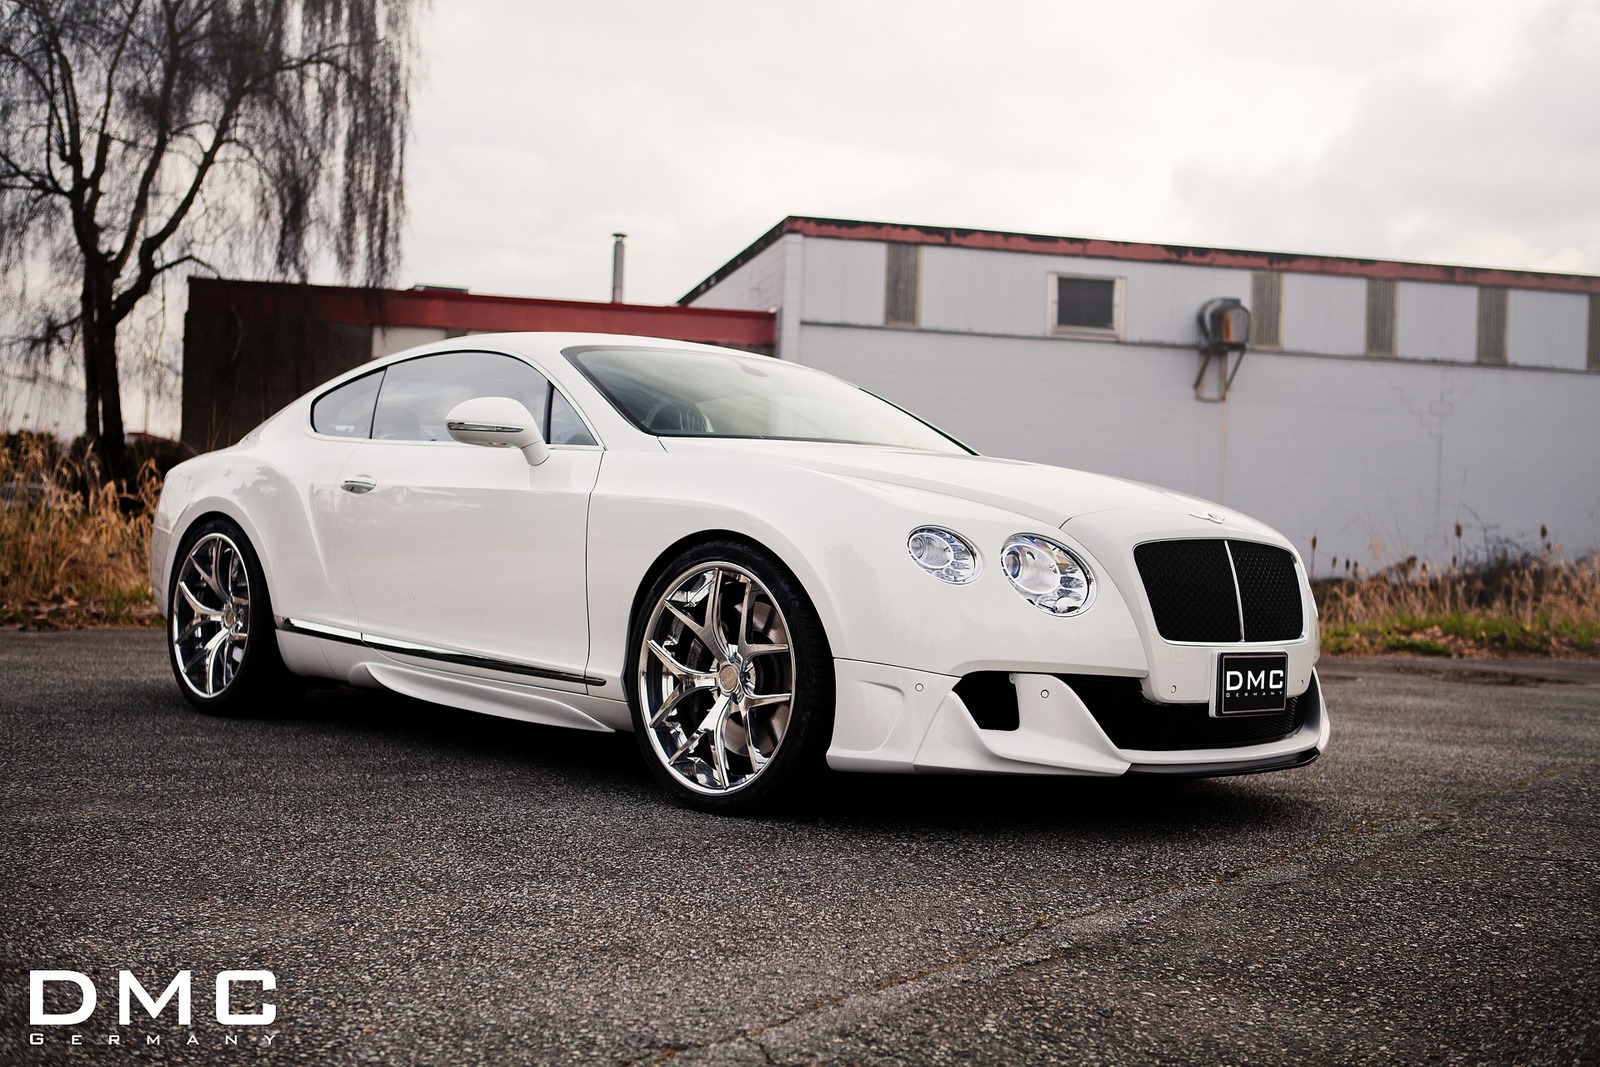 2013 Bentley Continental Gt Gets Awesome Dmc Body Kit